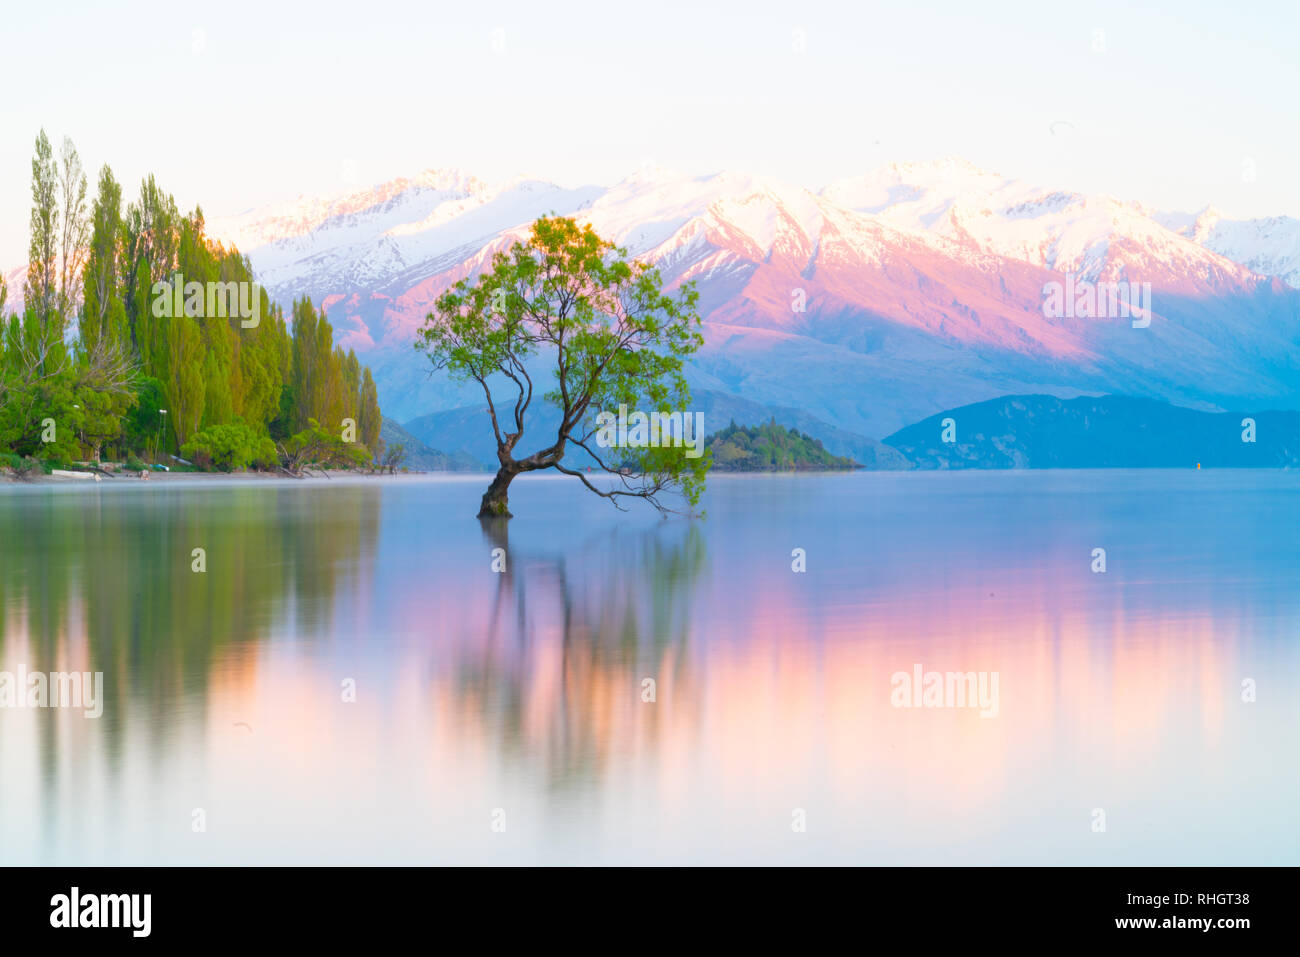 That Wanaka Tree, willow tree growing in lake is popular tourist scene in long exposure with sunset colors reflected from snow covered mountains behin Stock Photo